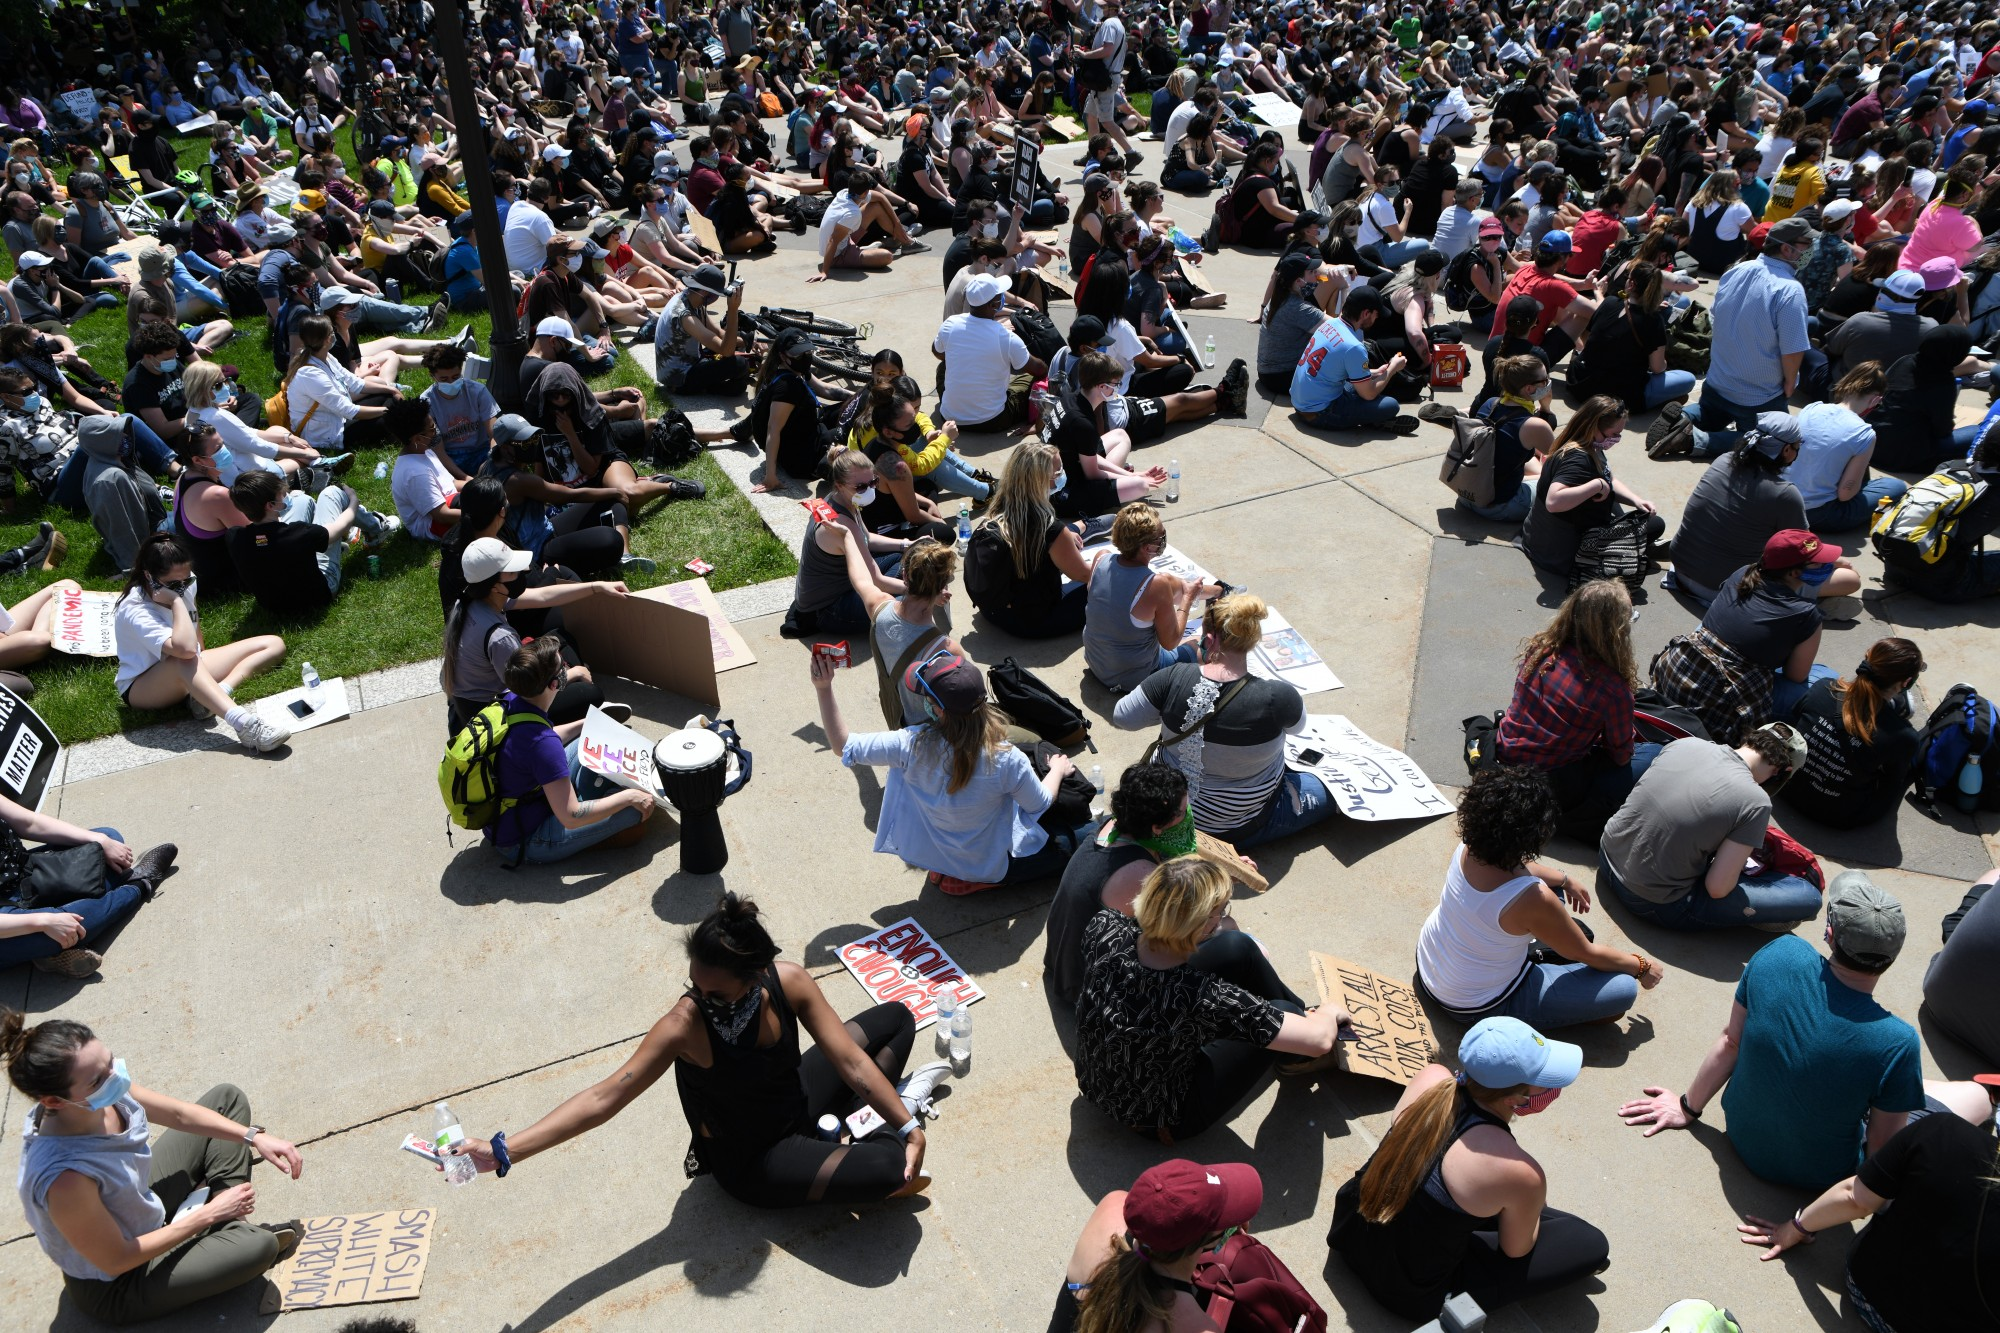 Demonstrators distribute bottled water and snacks through the crowd as they sit in front of the Minnesota State Capitol on Sunday, May 31.